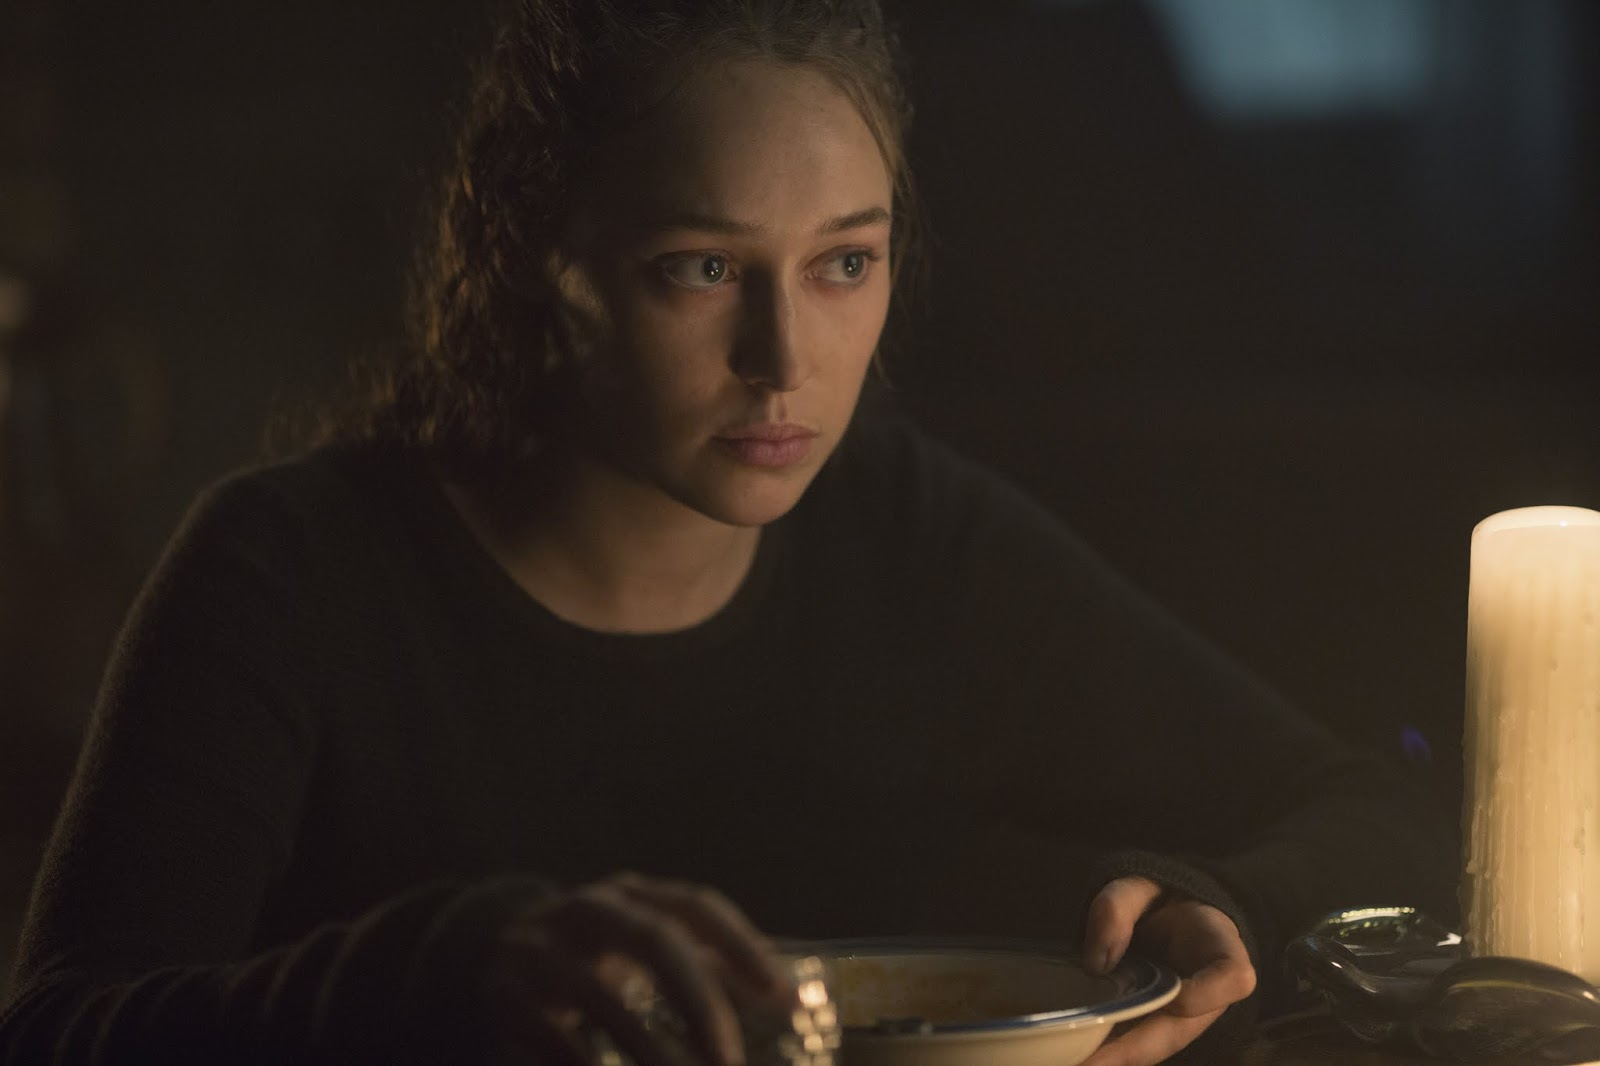 Alicia en el episodio 4x10 Close Your Eyes de Fear The Walking Dead